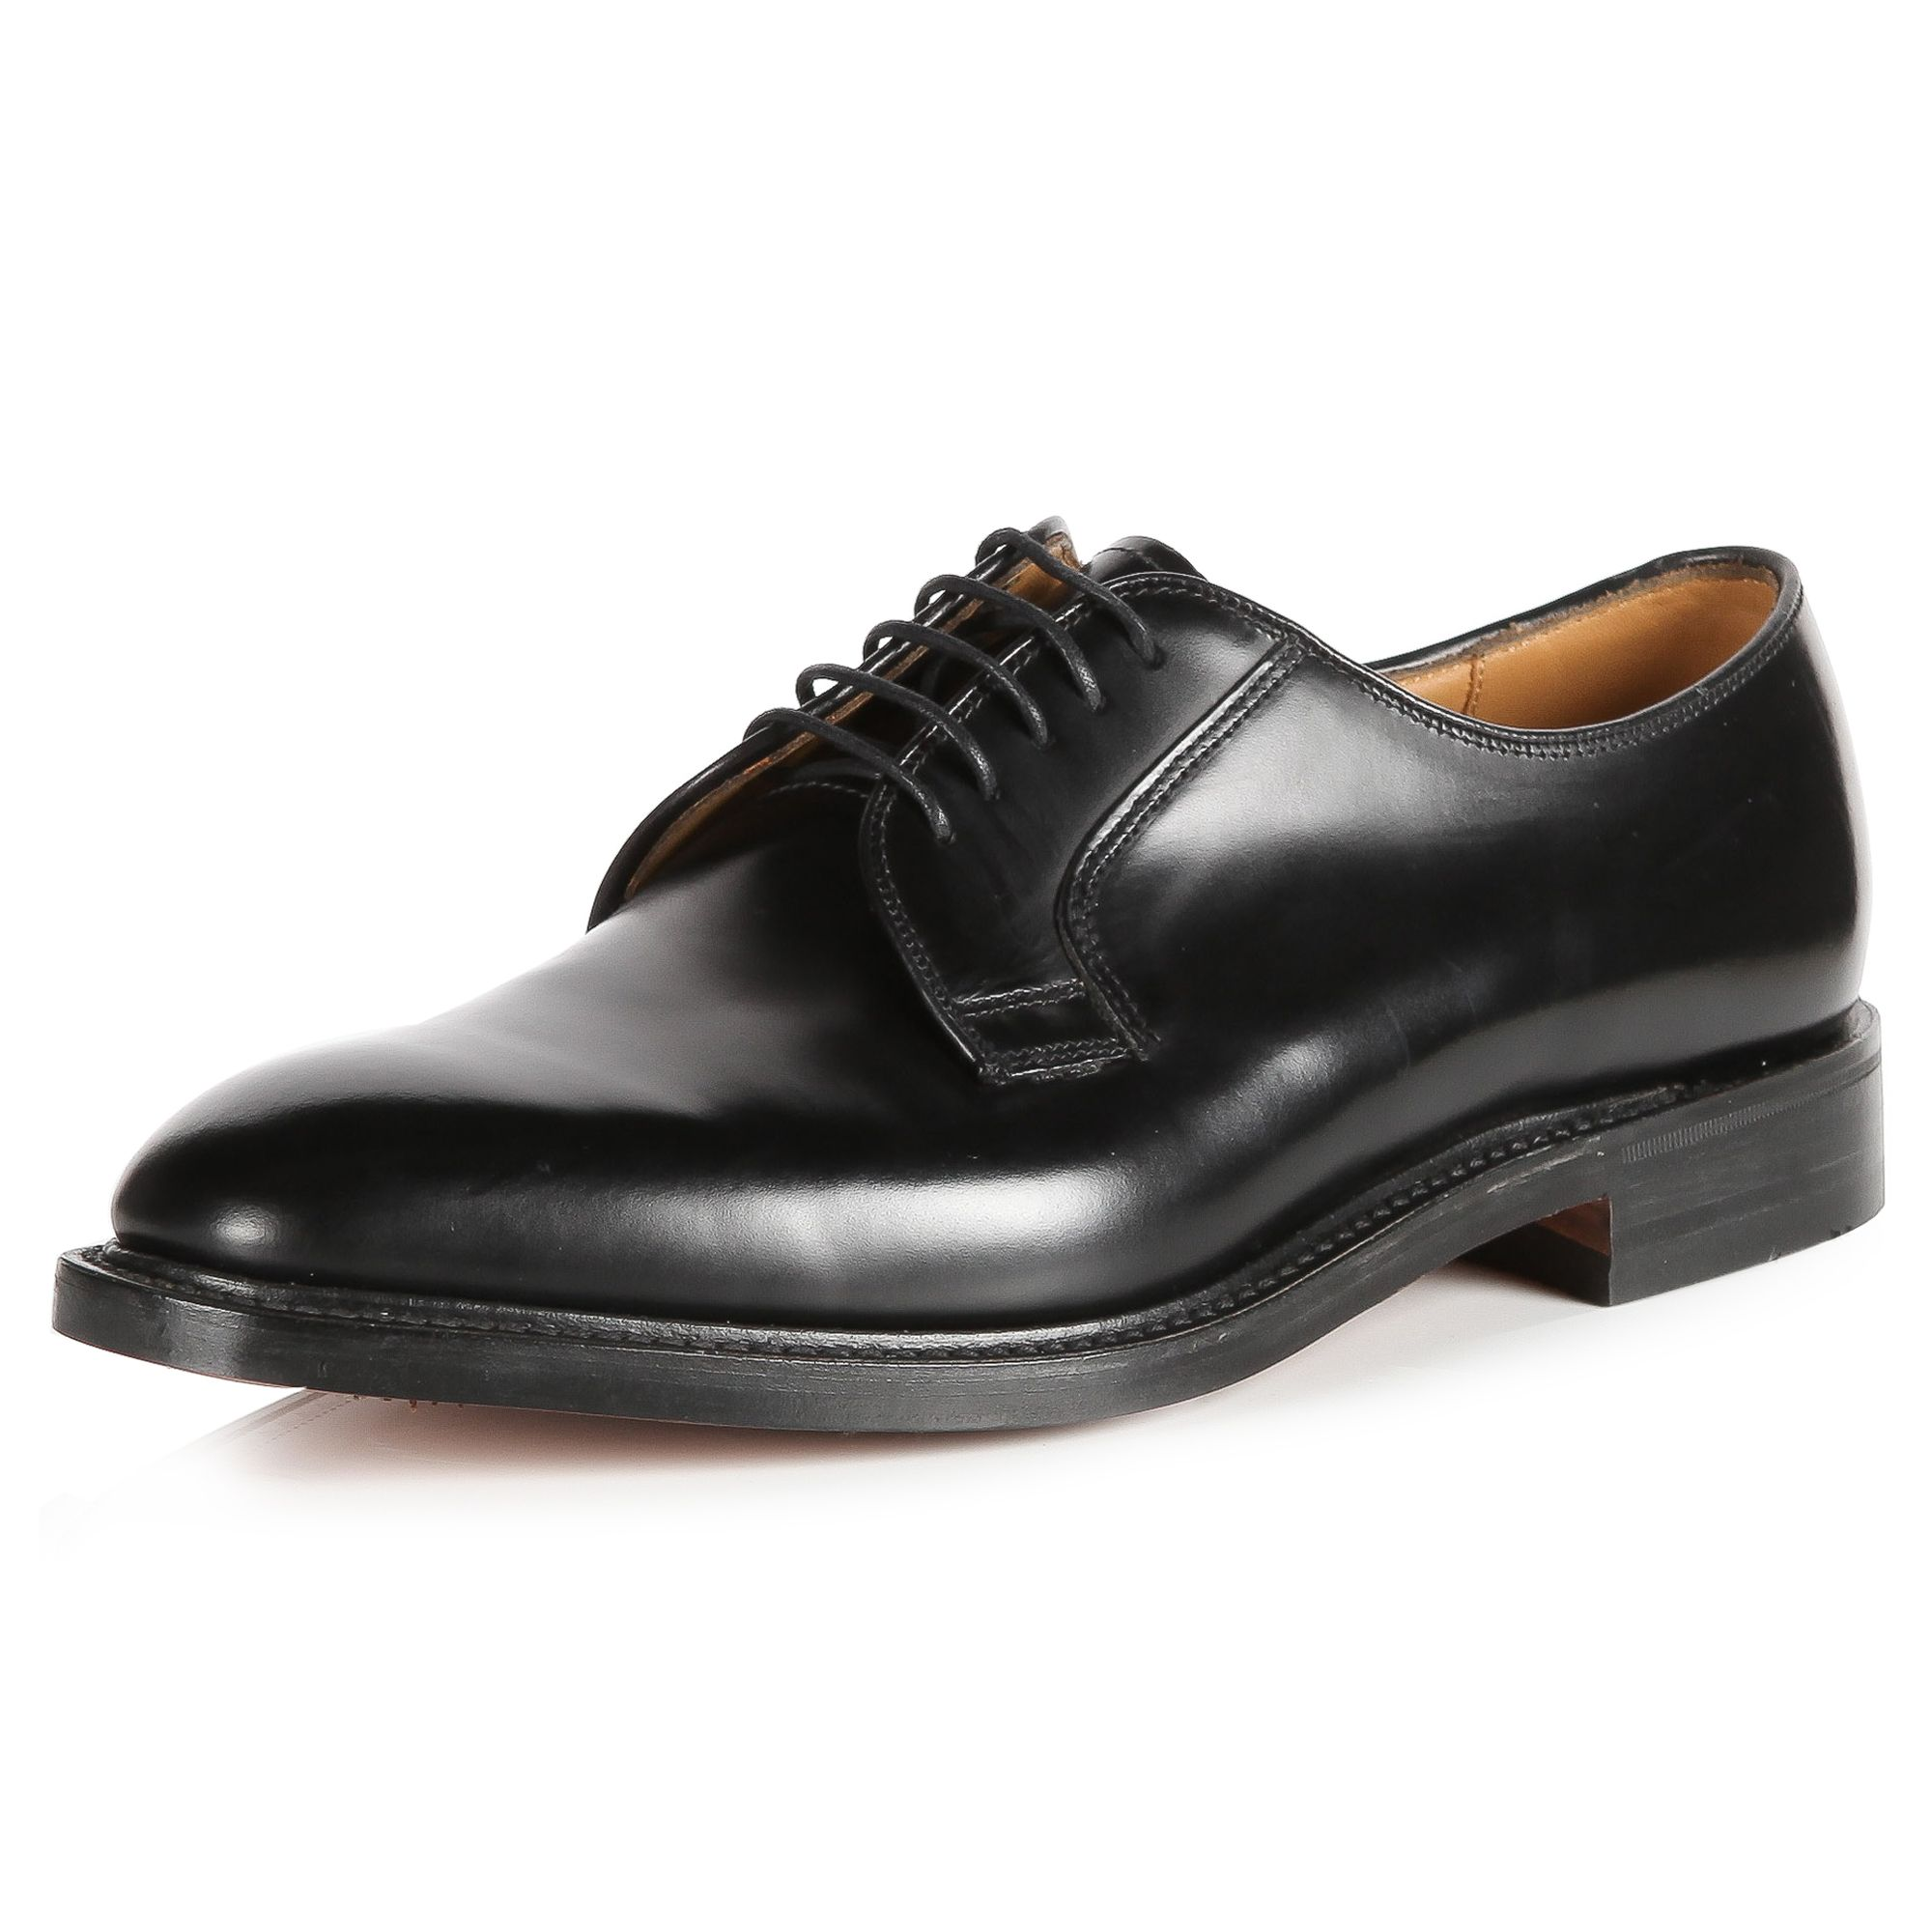 Loake Black Shoes Sale